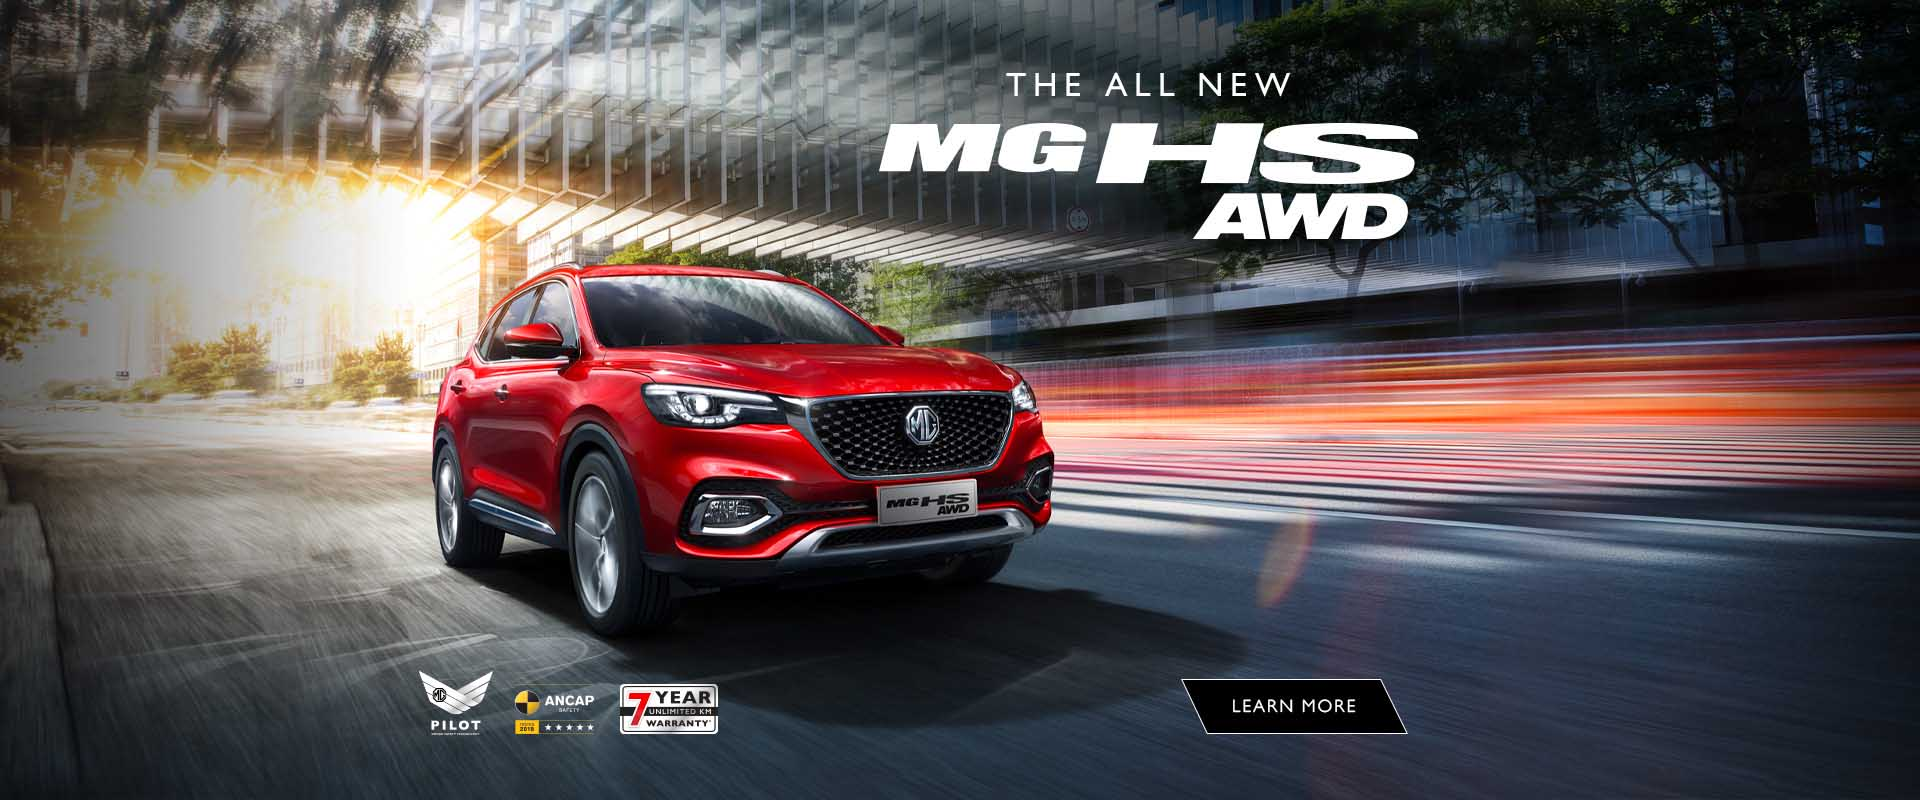 ALL-NEW-MG-HS-LEARN-MORE